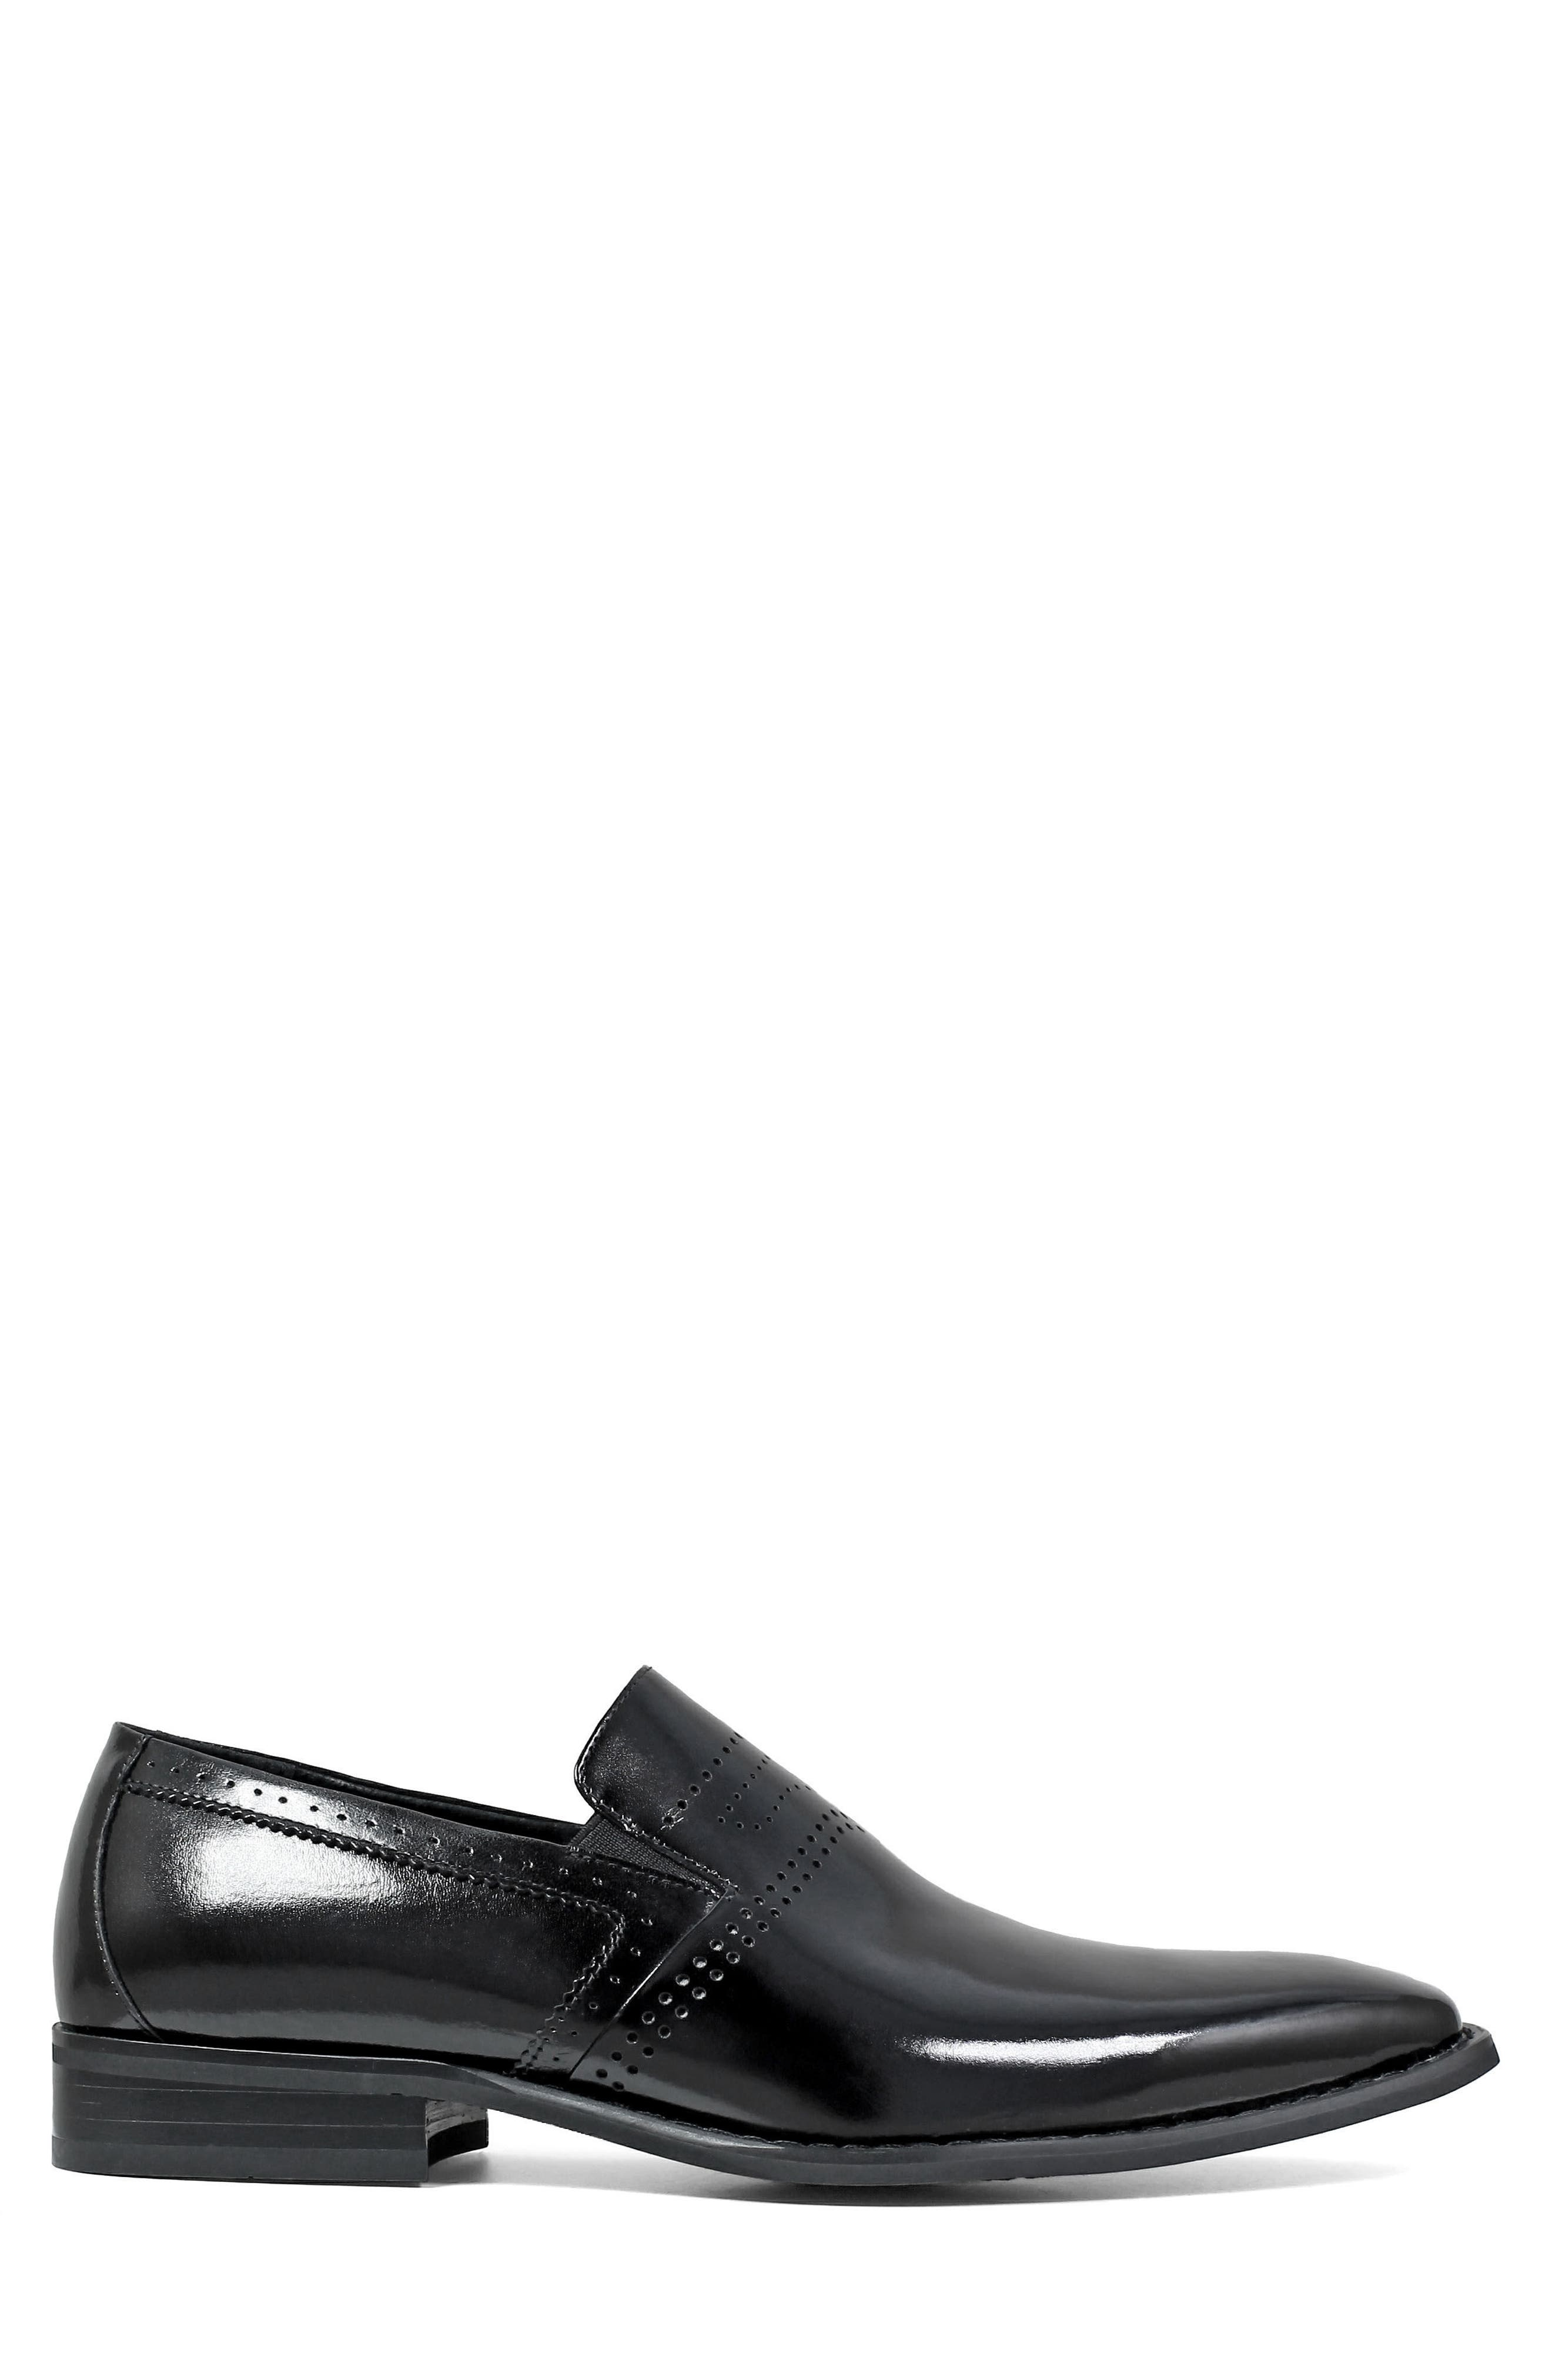 Saunders Perforated Venetian Loafer,                             Alternate thumbnail 3, color,                             BLACK LEATHER